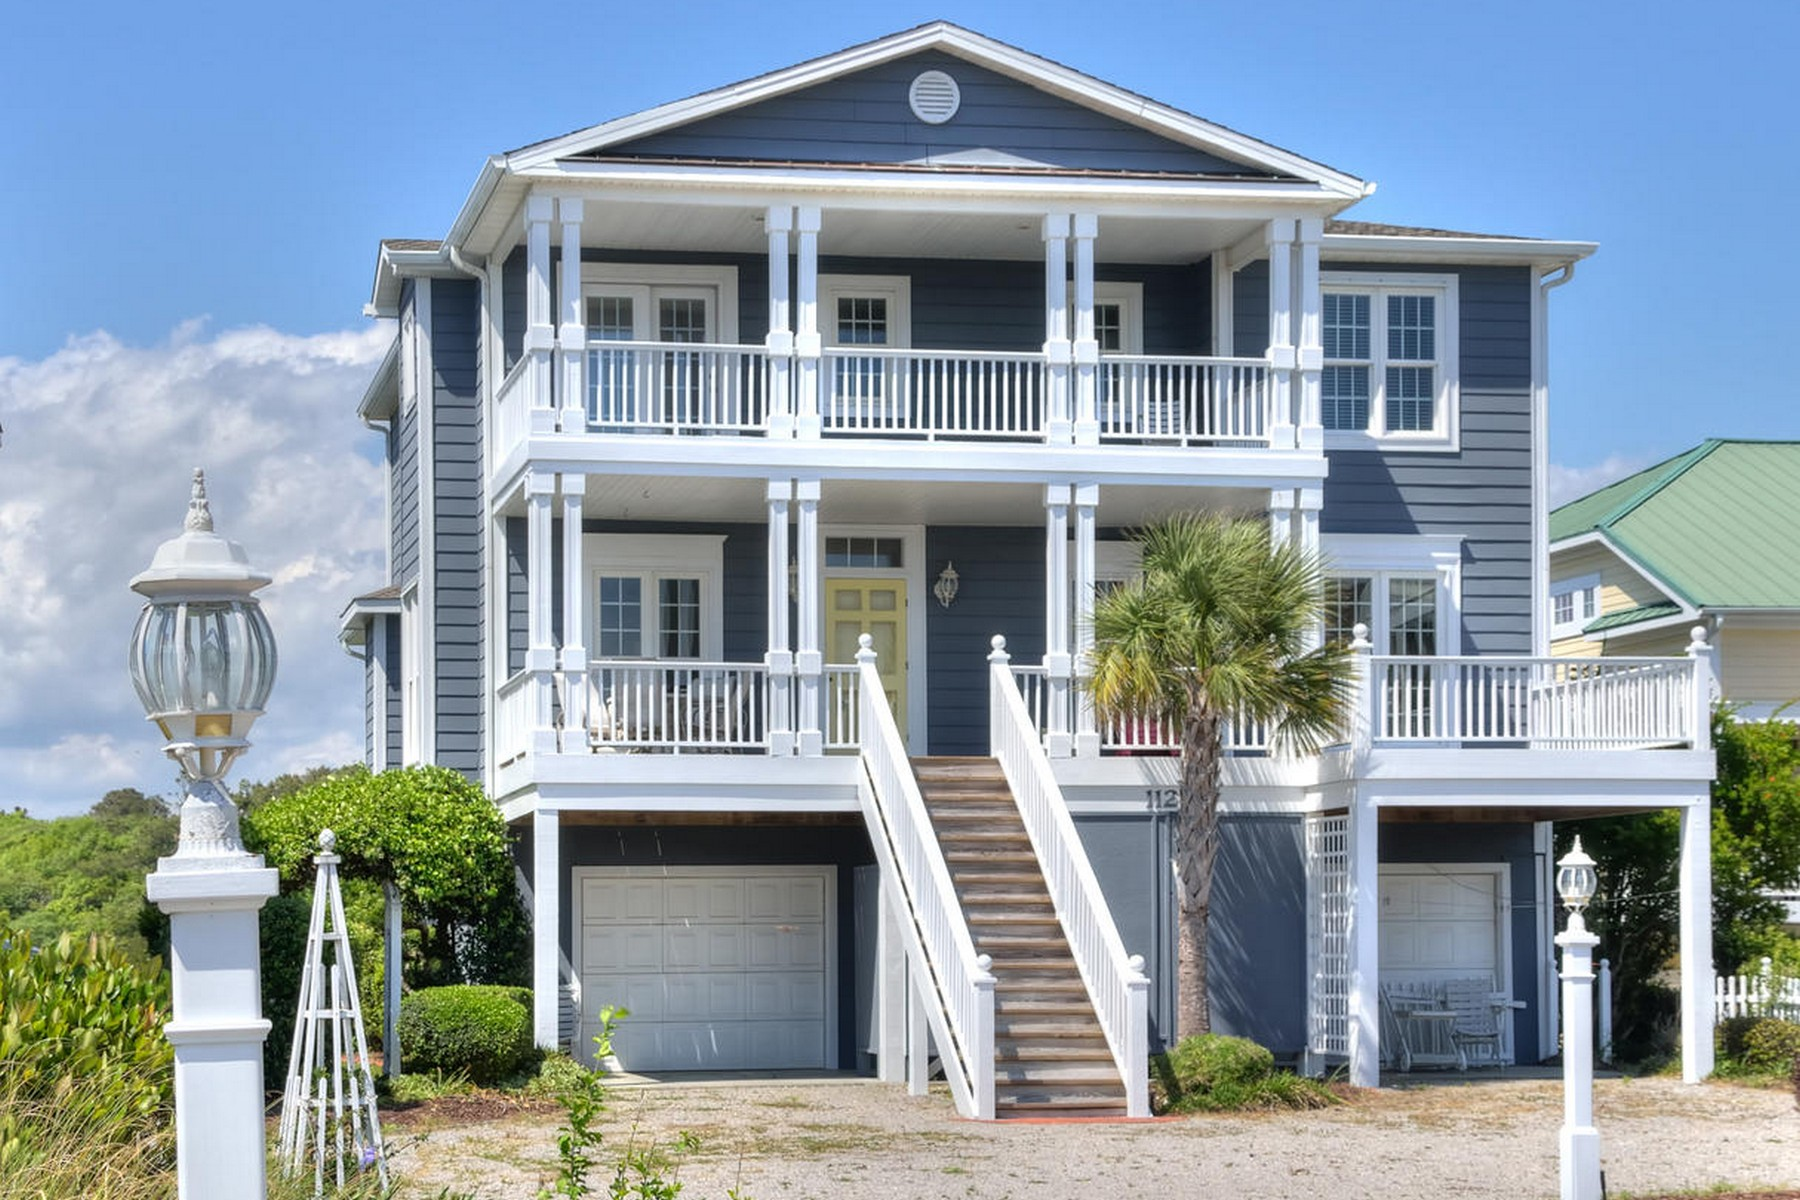 Casa Unifamiliar por un Venta en Incredible ICW Island Home 112 Golden Dune Way Lot #32 Holden Beach, Carolina Del Norte, 28462 Estados Unidos